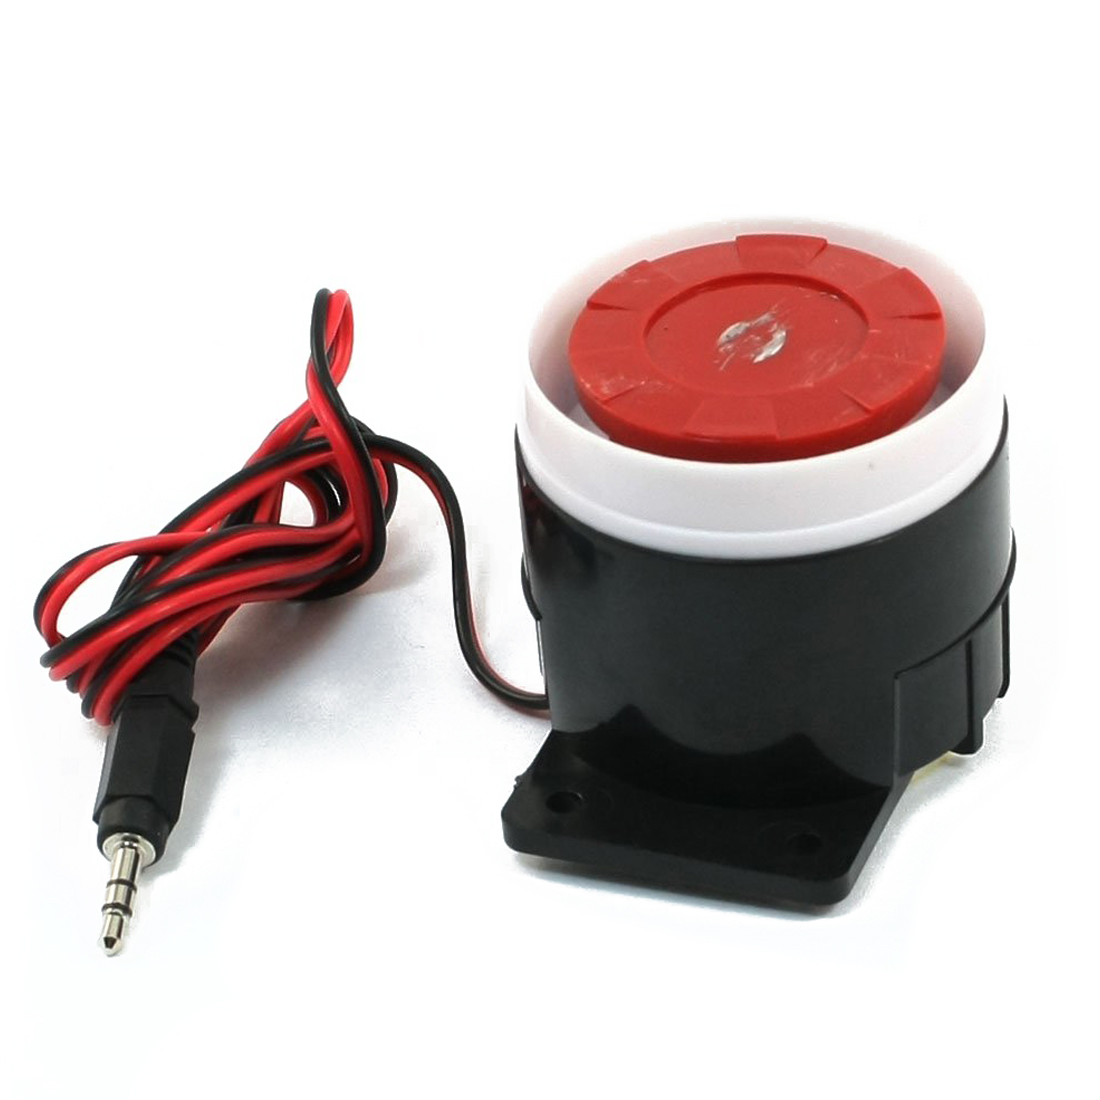 AAAE Top Continuous Sound Decibel Piezo <font><b>Buzzer</b></font> IC Alarm Speaker DC 12V <font><b>120db</b></font> Black+Red image